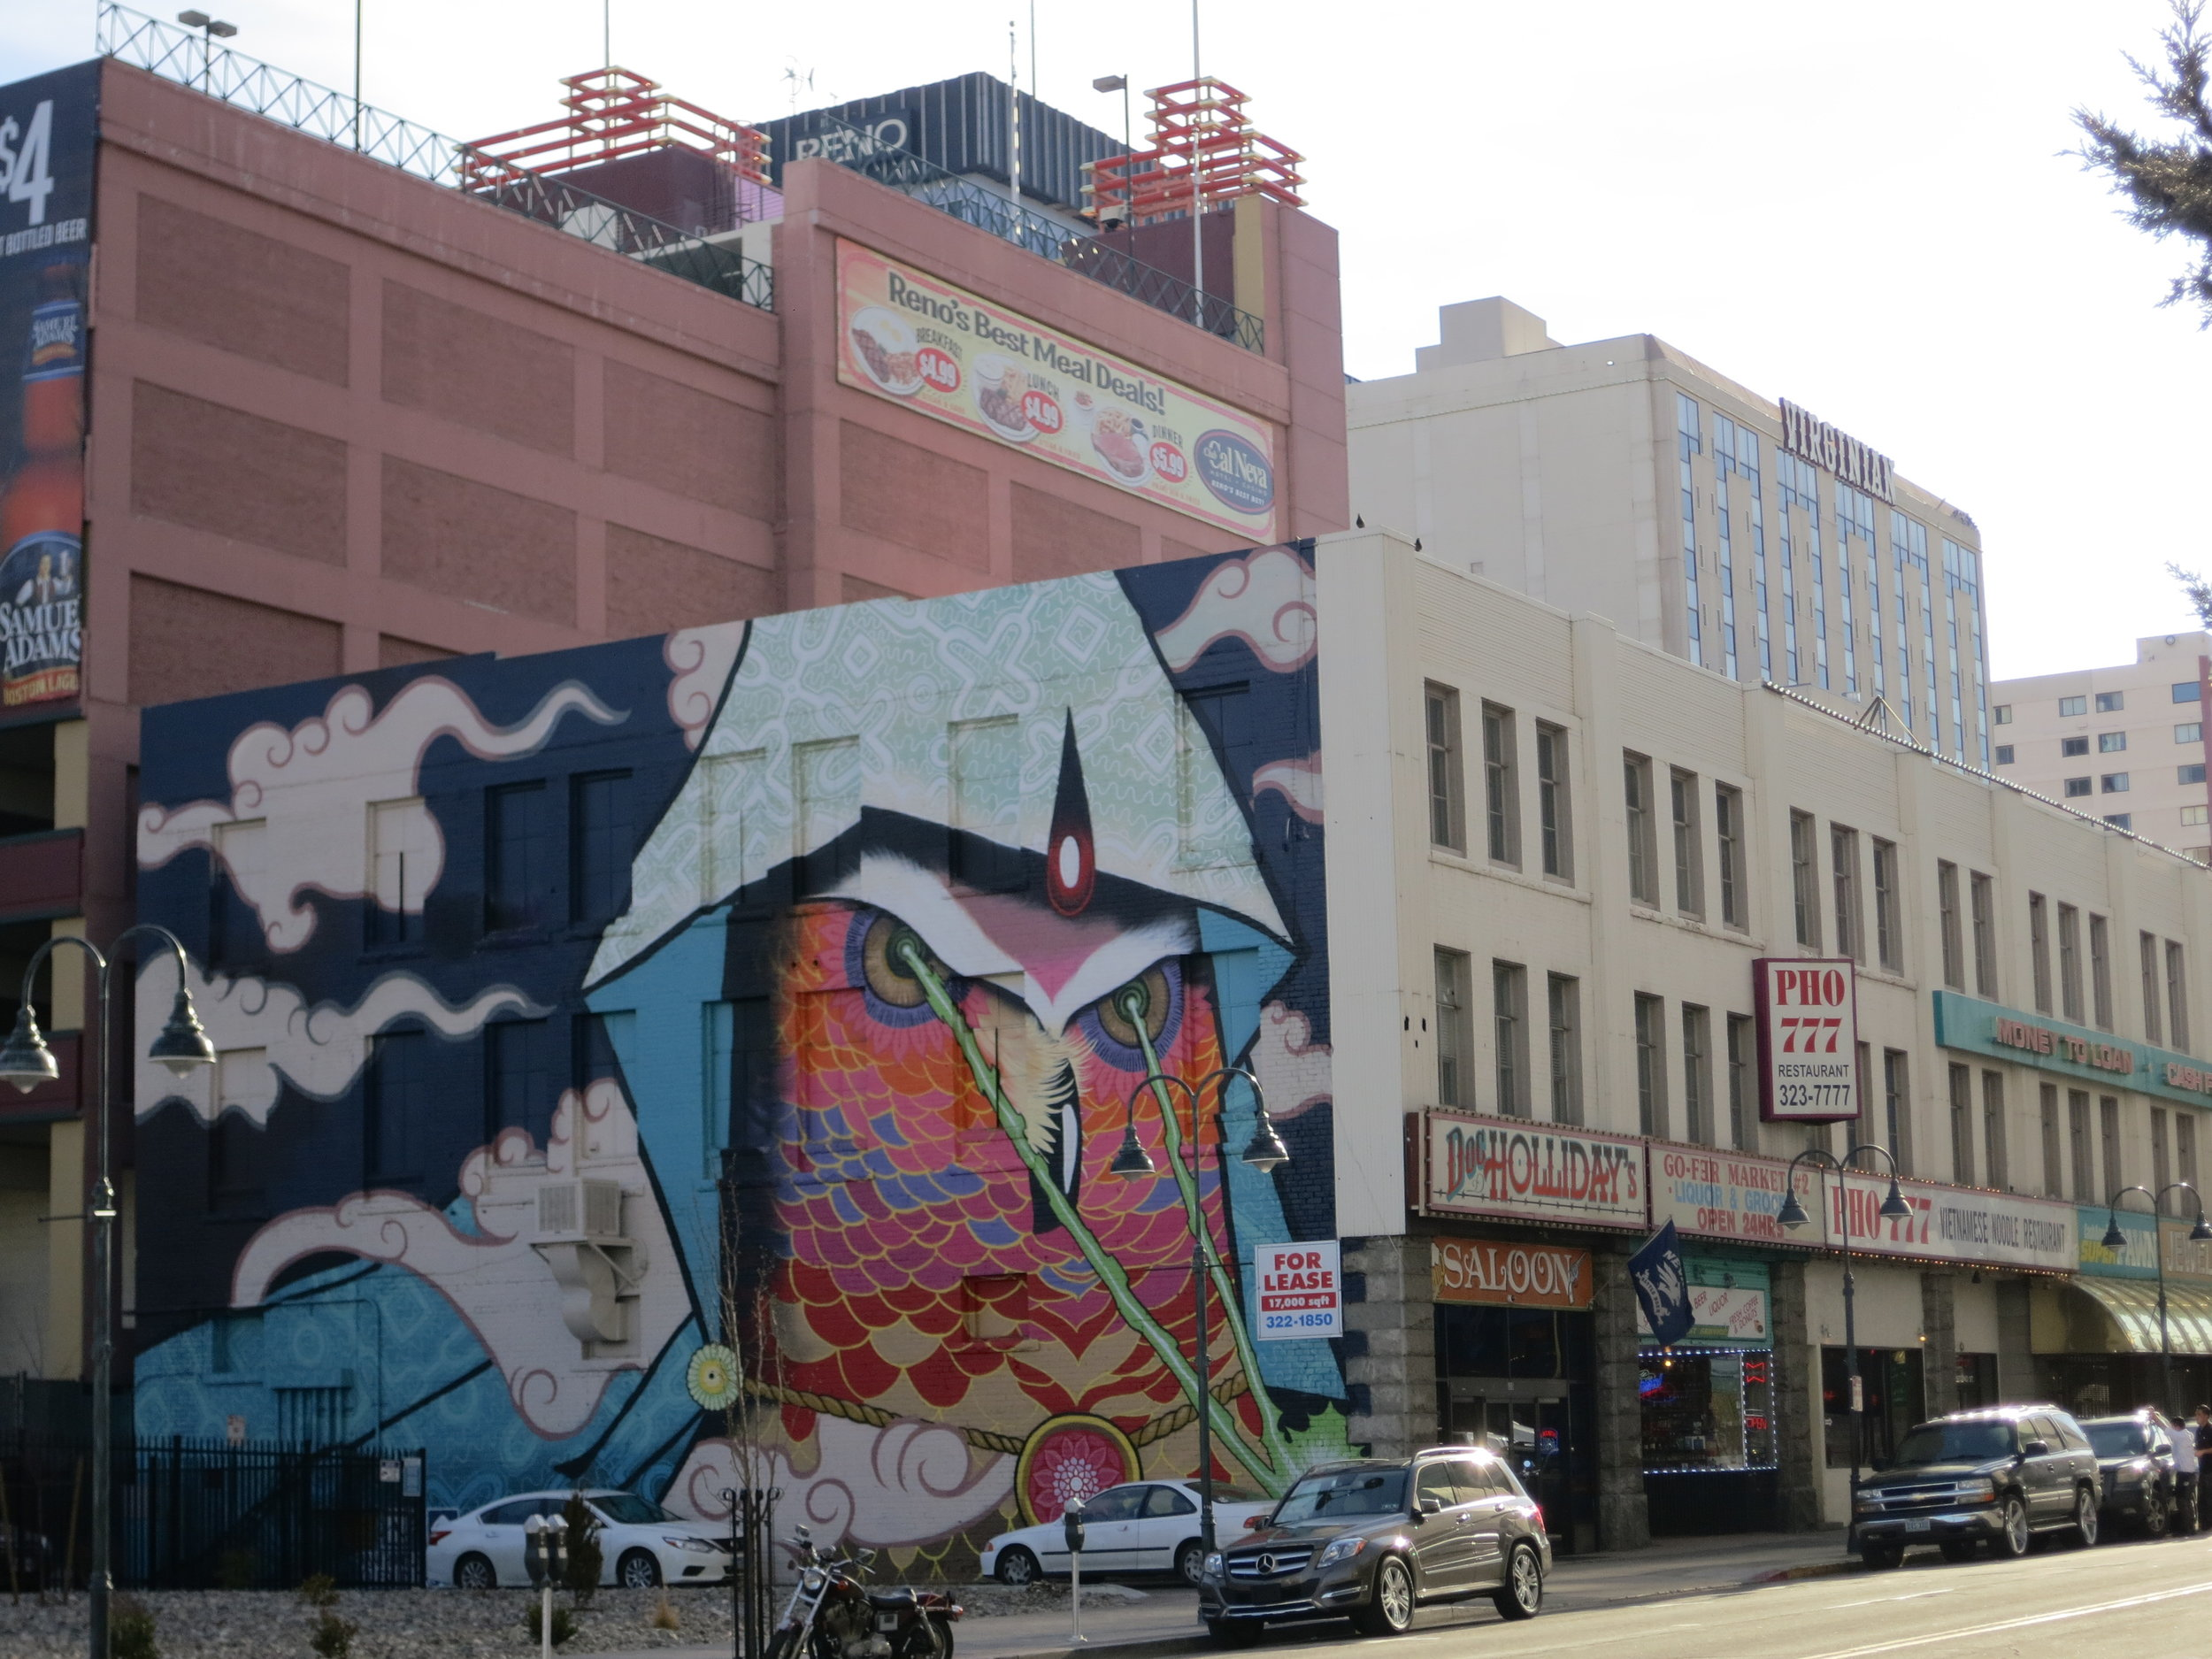 New murals continuously dot the downtown Reno landscape.